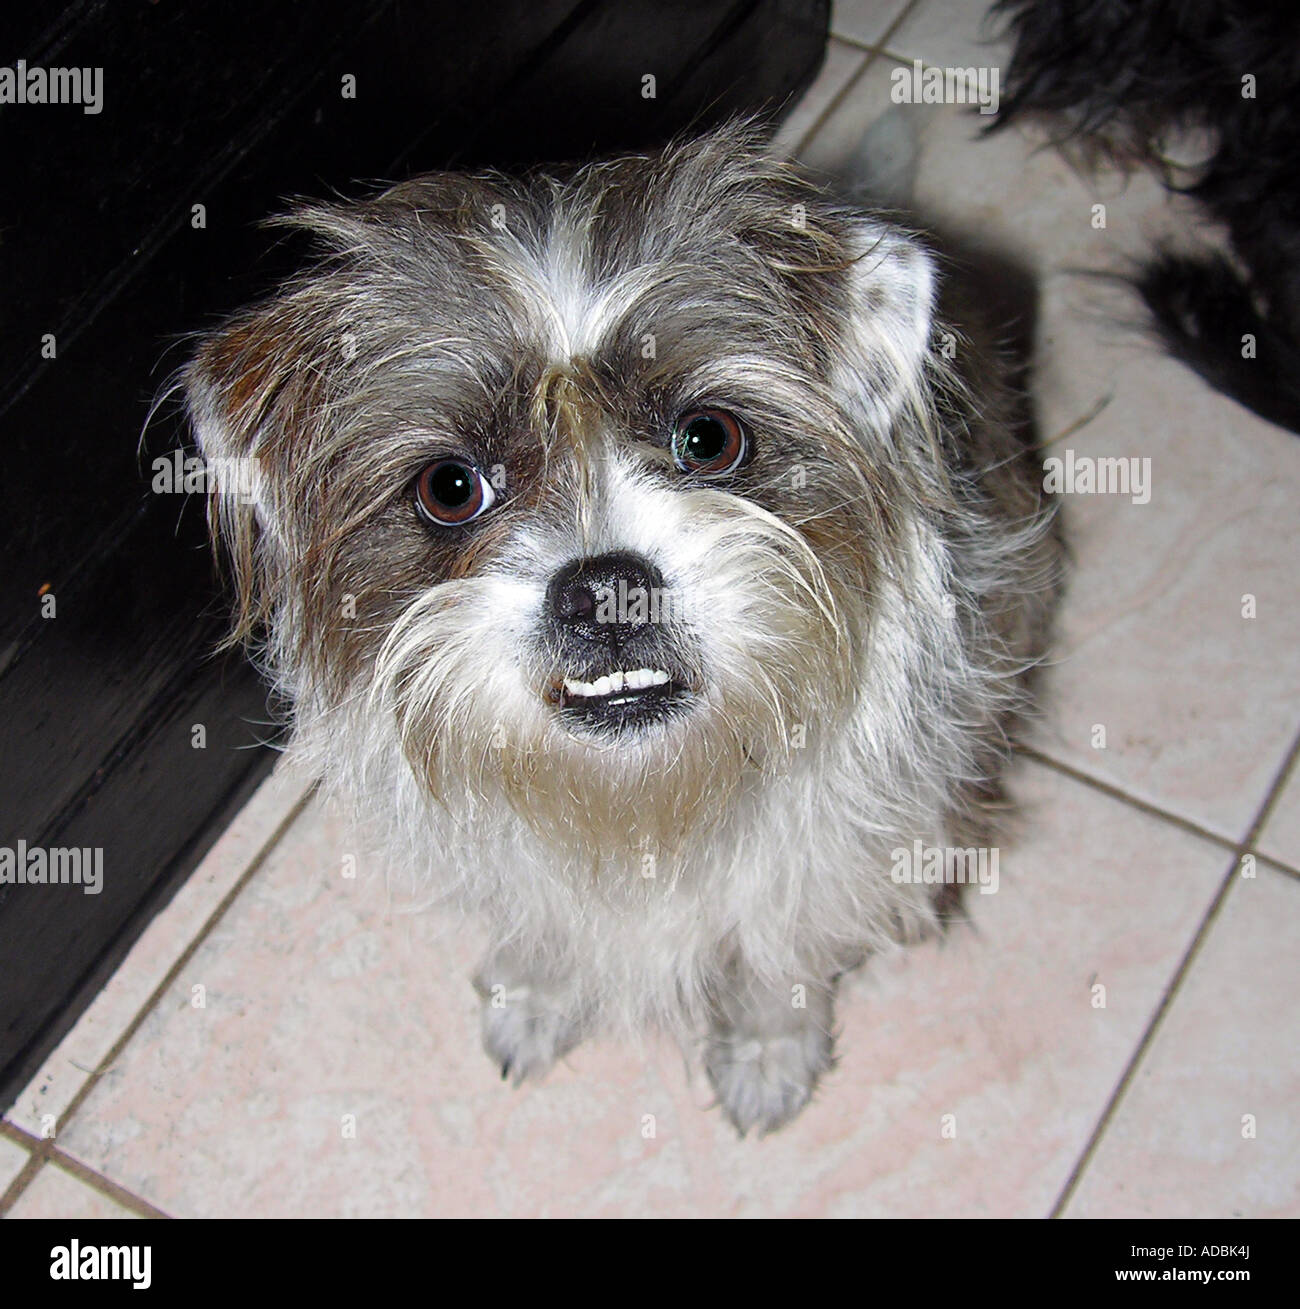 Jack Russell Shih Tzu Mix Puppy Looking Stock Photo 13368929 Alamy